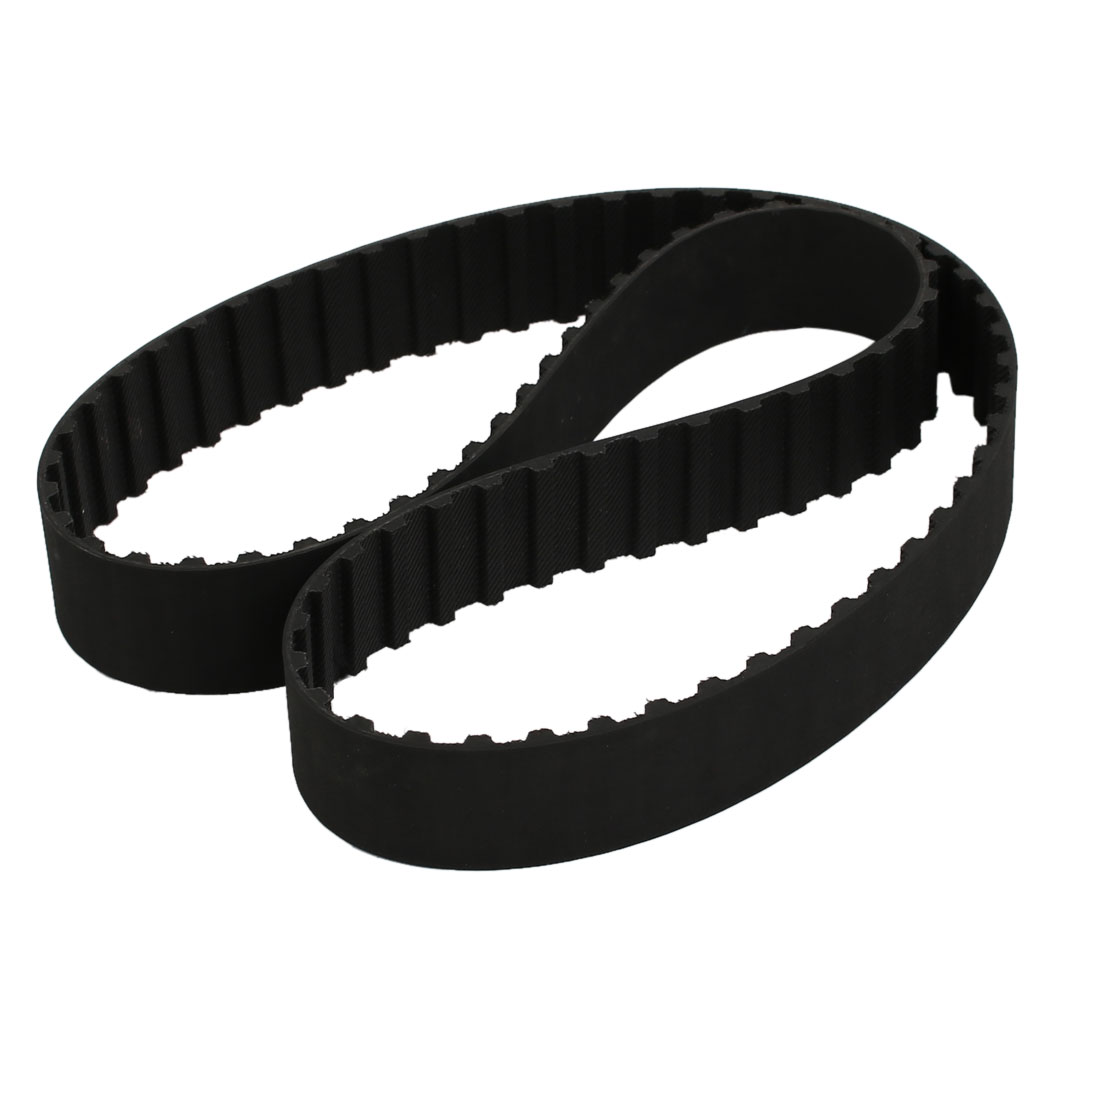 322L 86 Teeth 25mm Width 9.525mm Pitch Stepper Motor Rubber Timing Belt Black